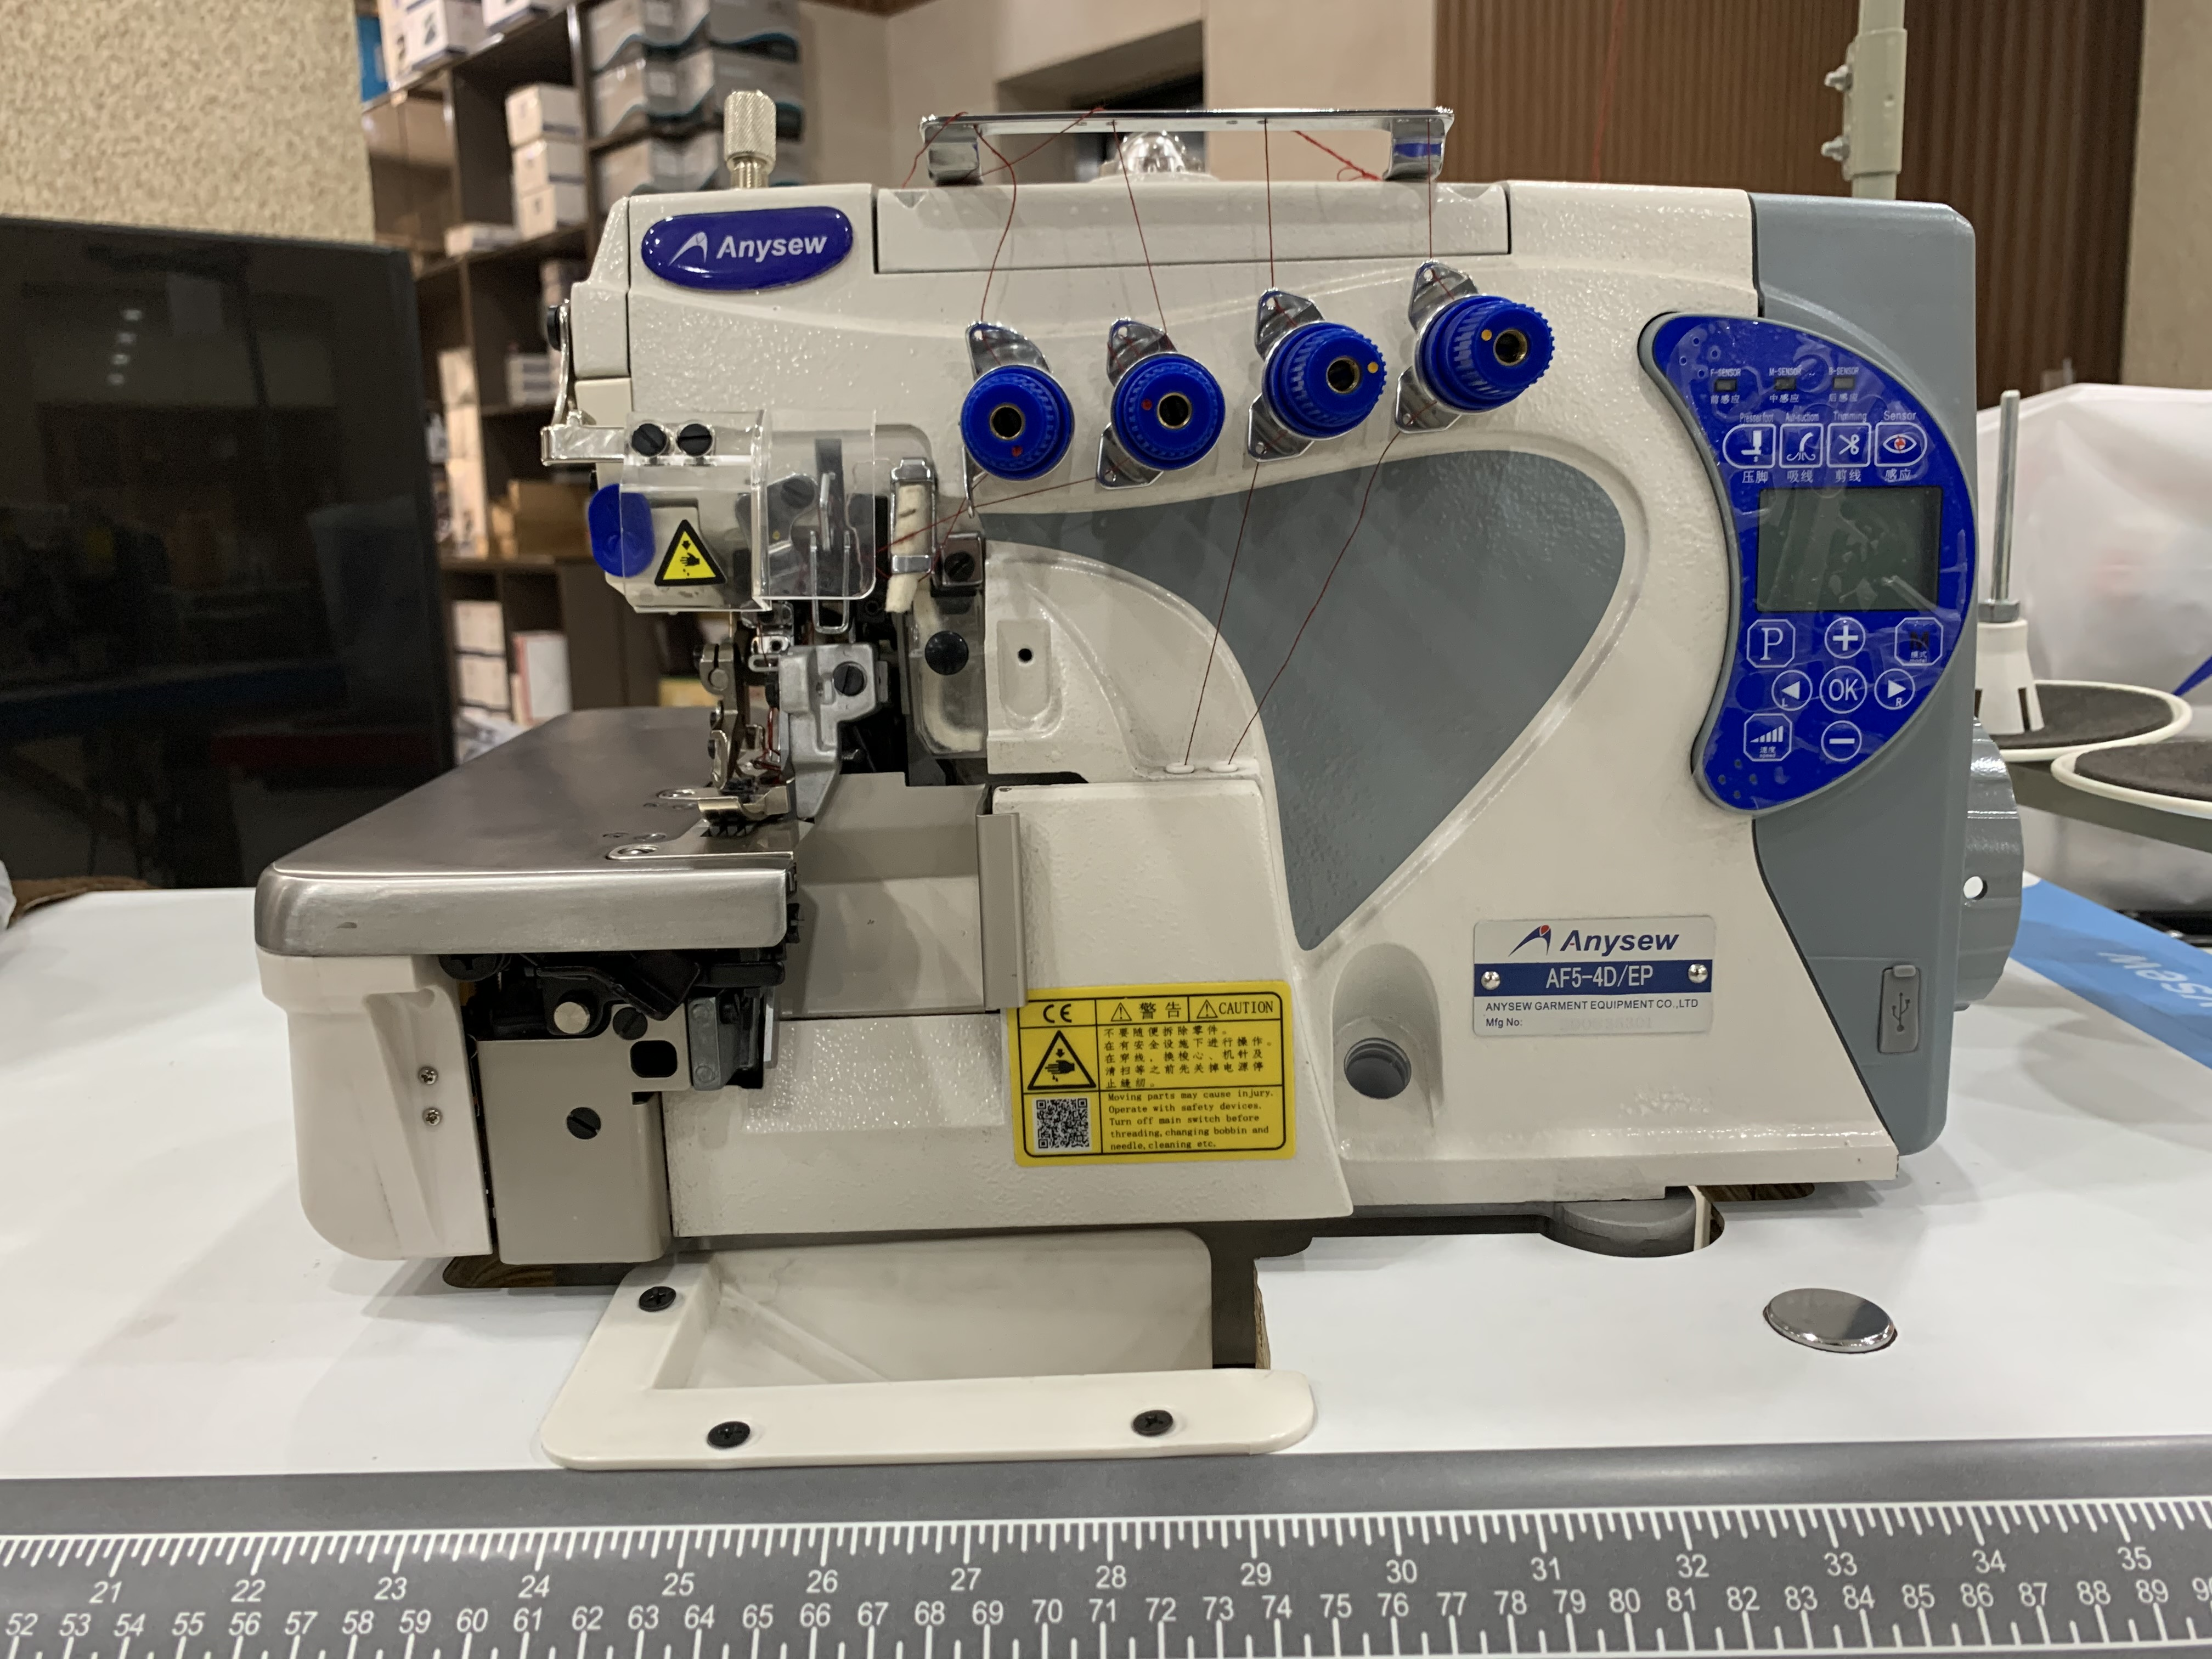 Anysew 4 Thread Auto-Trim Auto-Foot lifter Overlock AF5-4D/EP